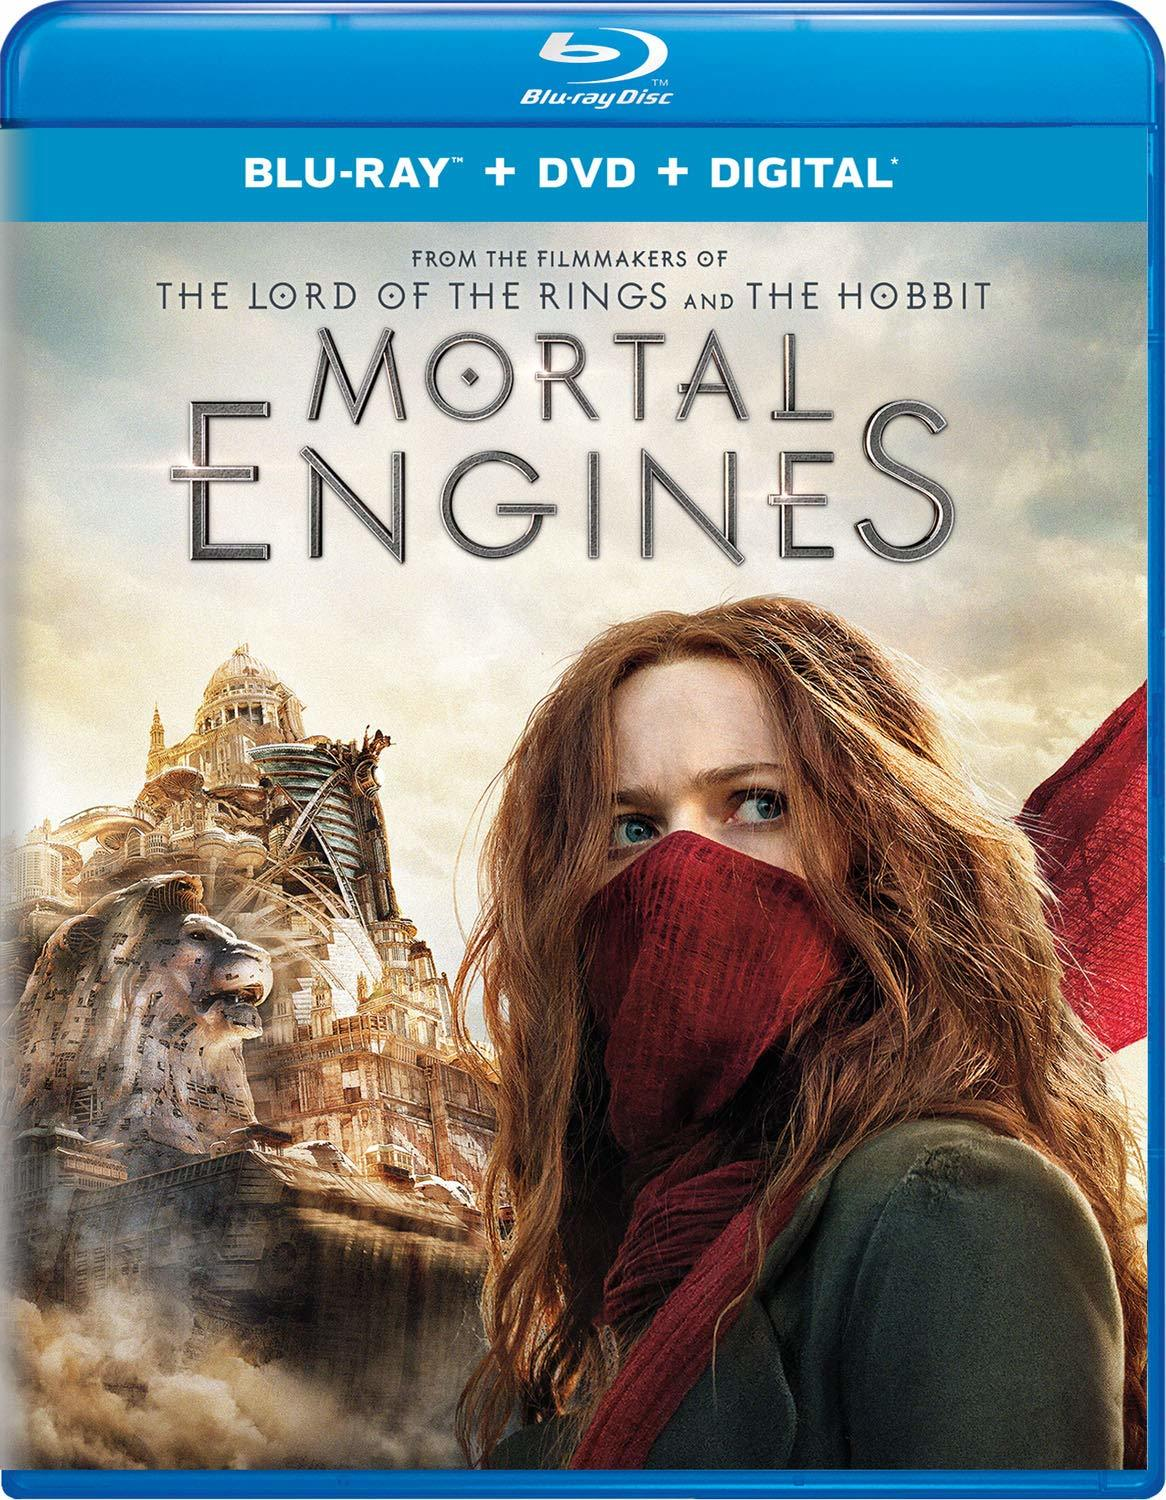 Mortal Engines (2018) poster image